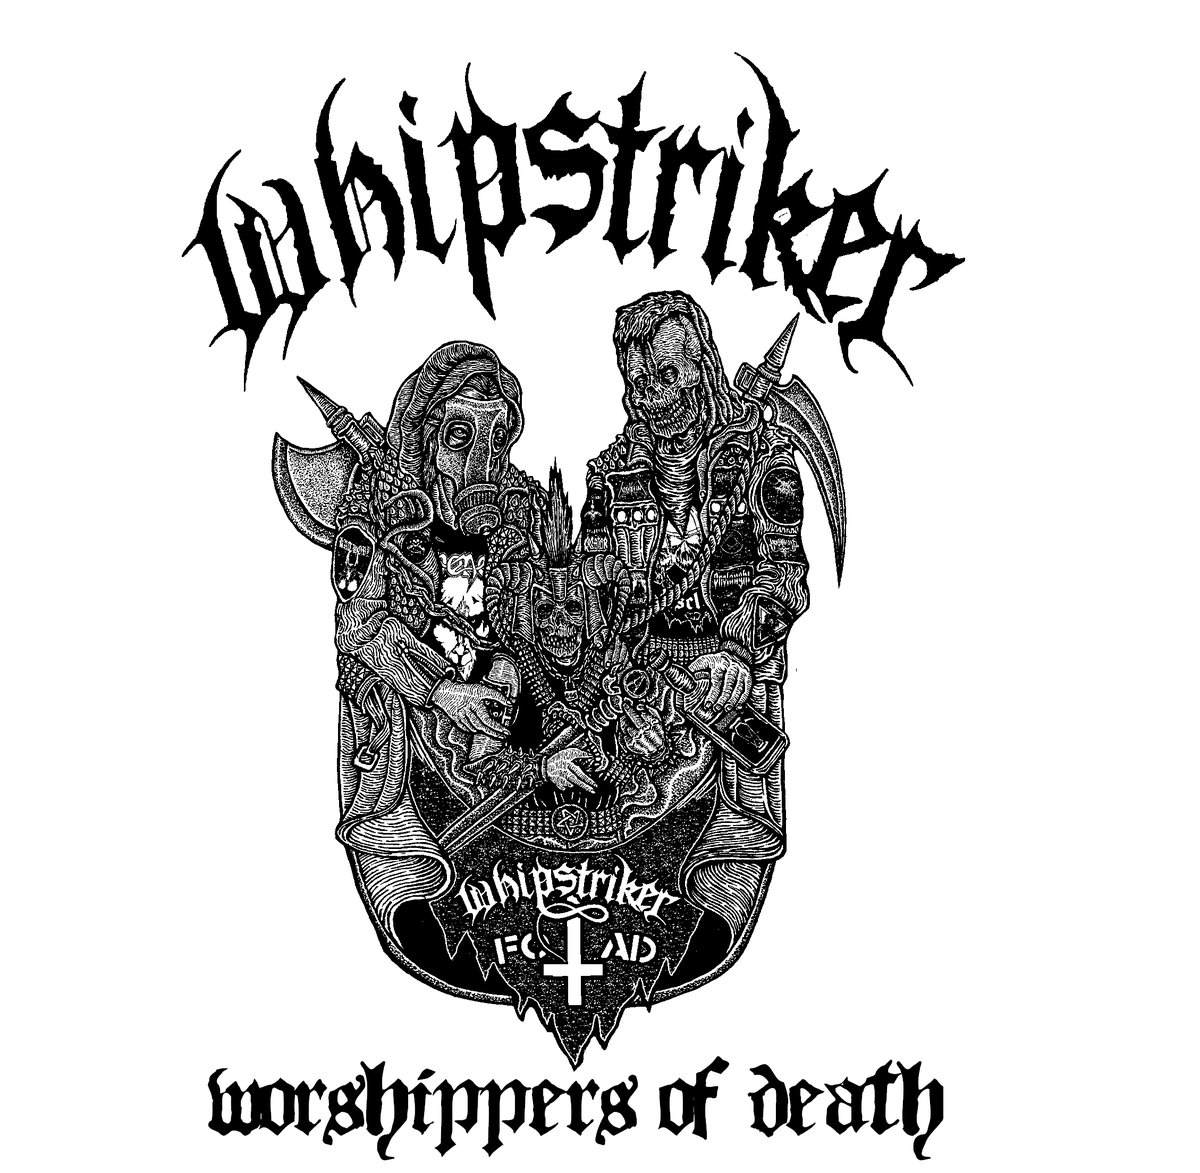 Whipstriker, Skull And Bullets - Attitude Punks Will Wail / Worshippers Of Death - 2012